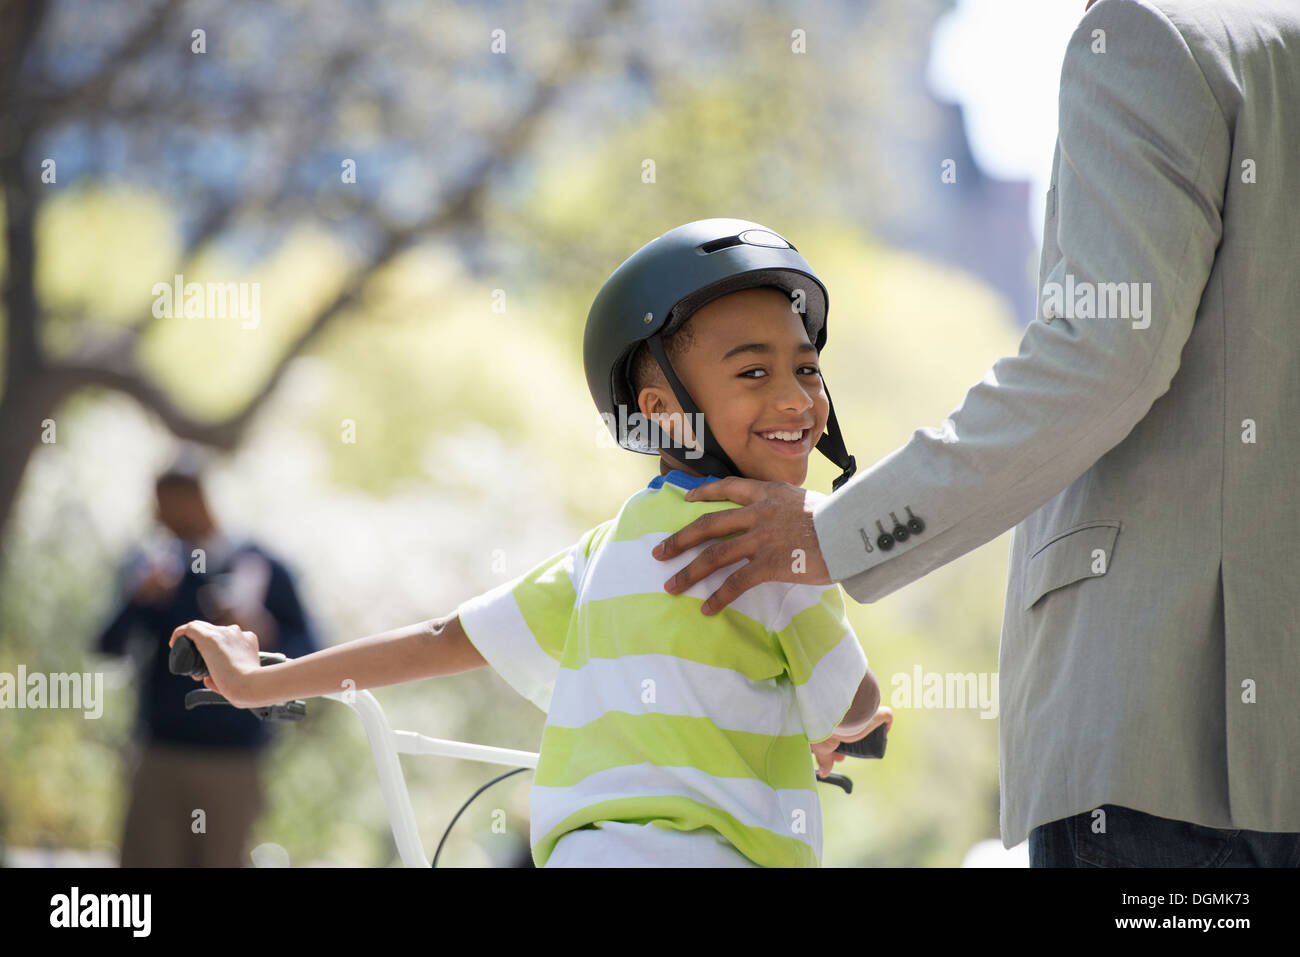 Bicycling and having fun. A father and son side by side. - Stock Image